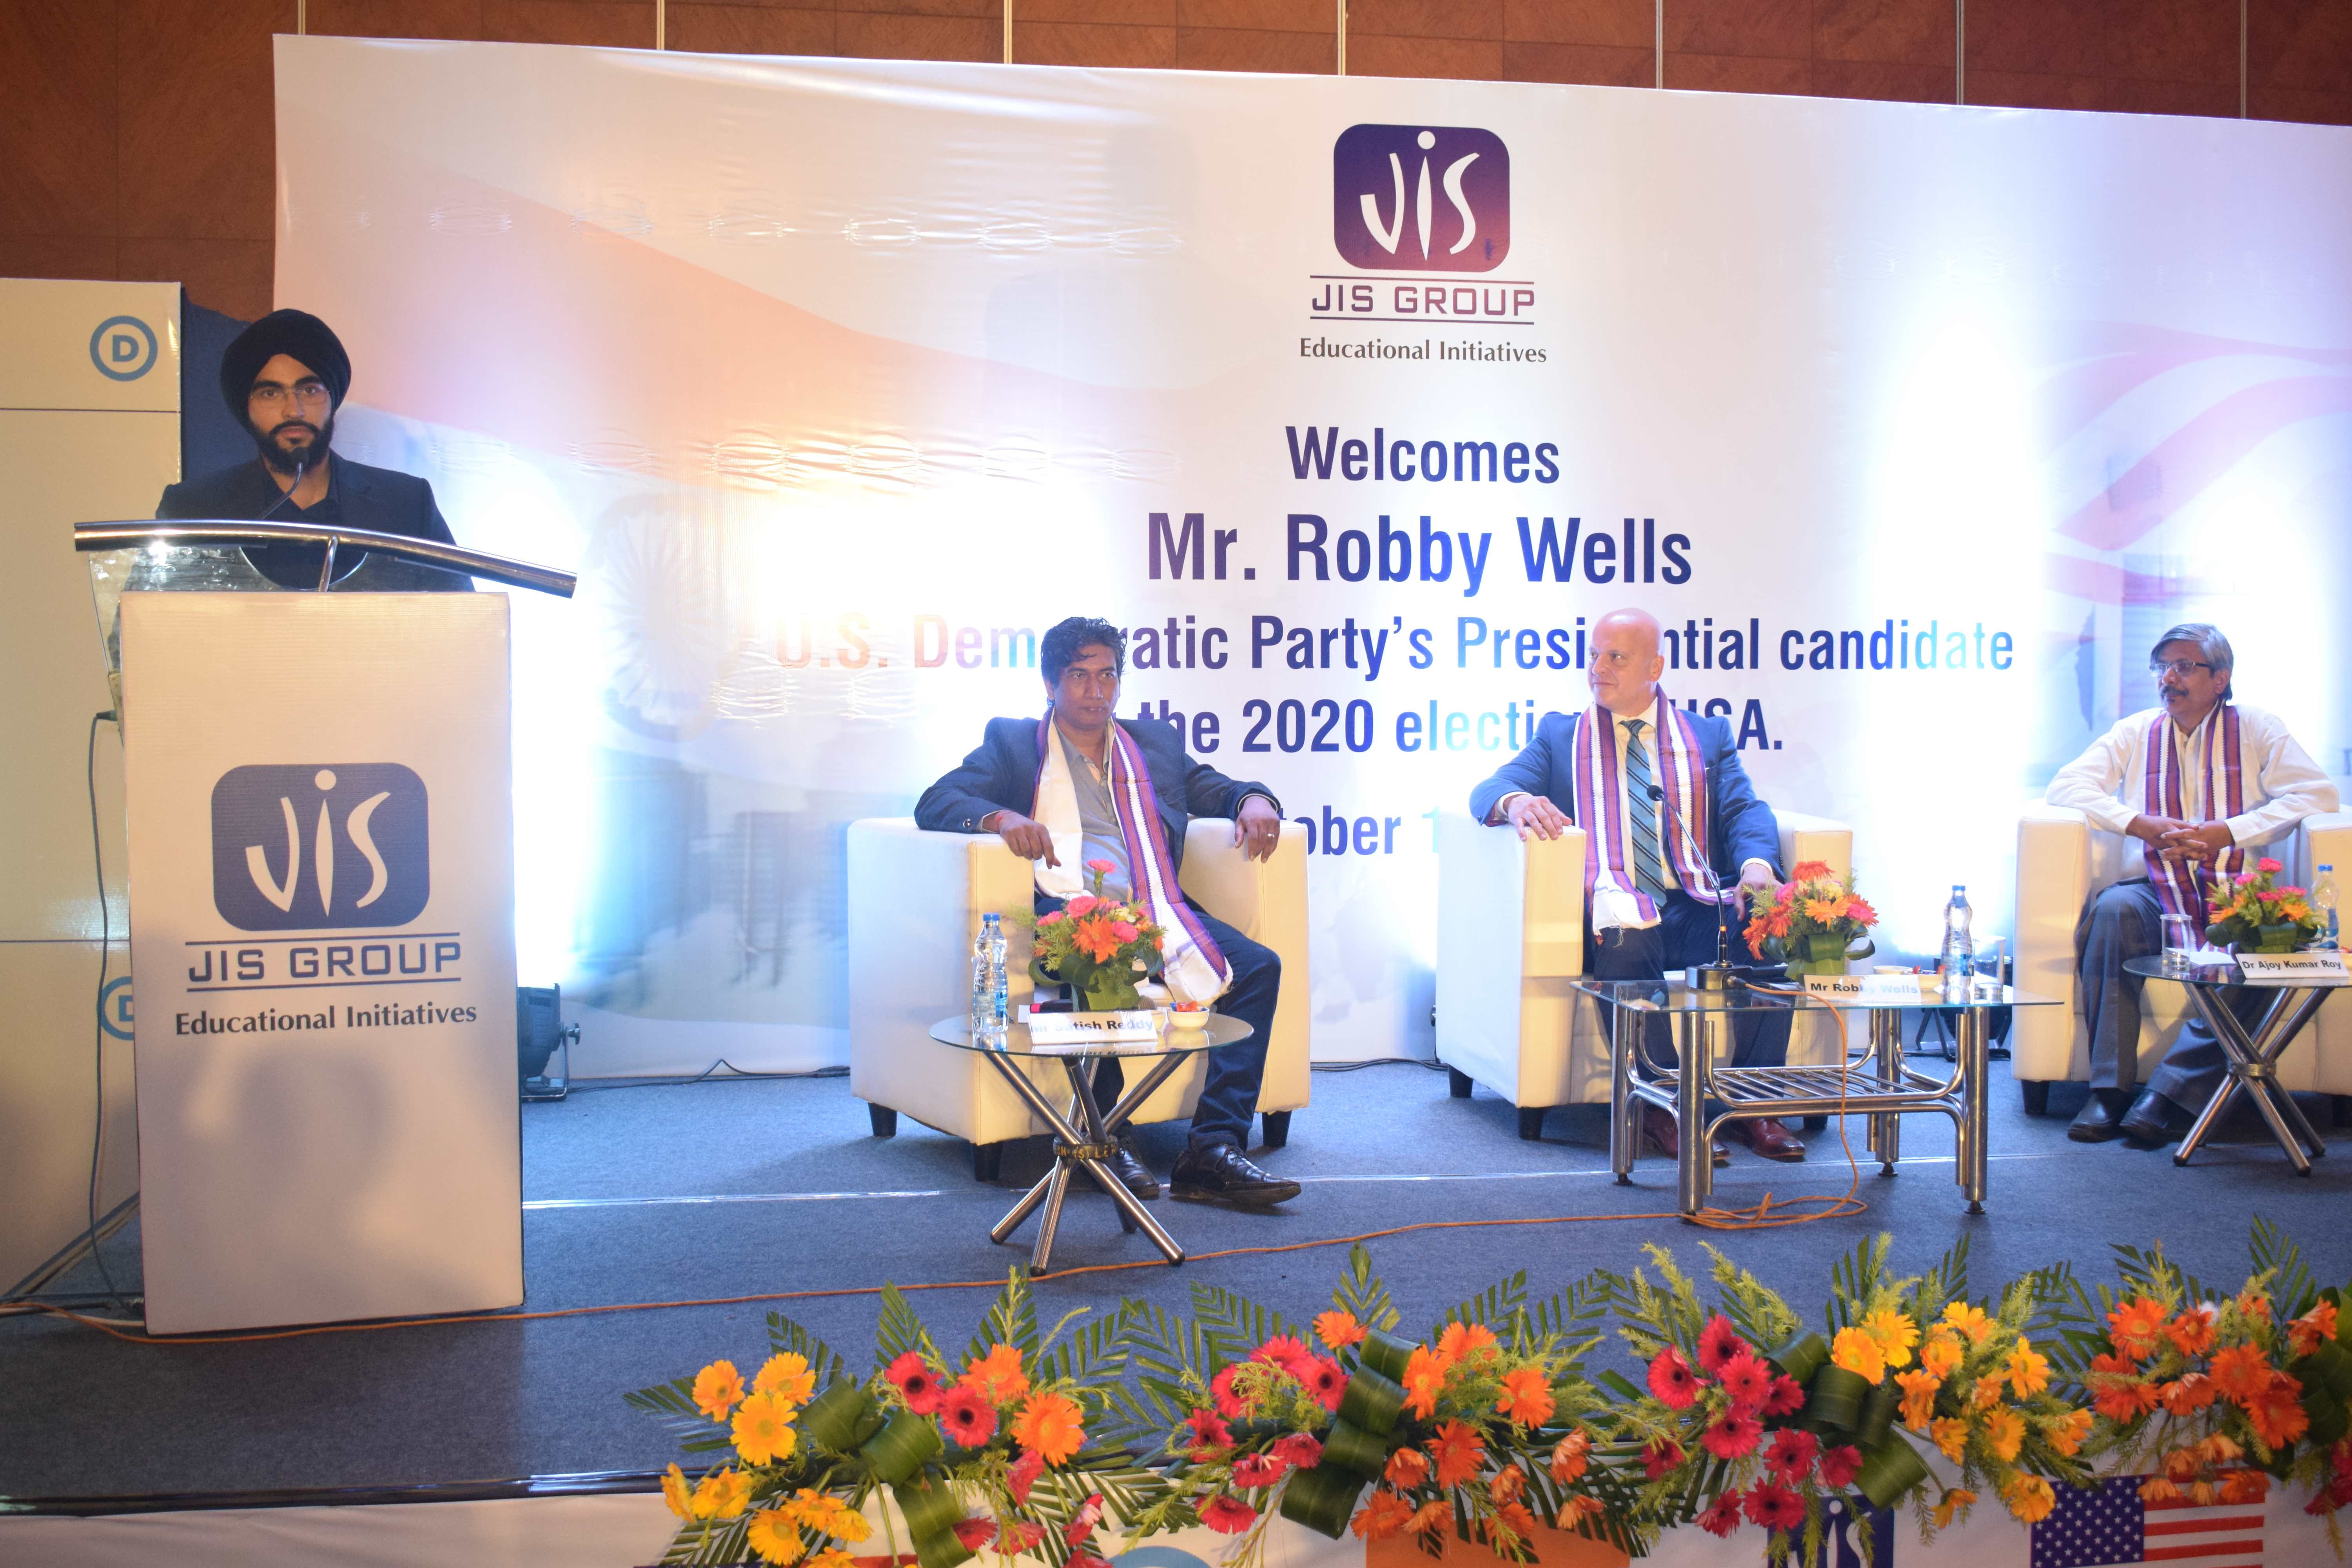 IIEST DIRECTOR CALLS FOR MORE INTENSE S&T RESEARCH IN 6 AREAS